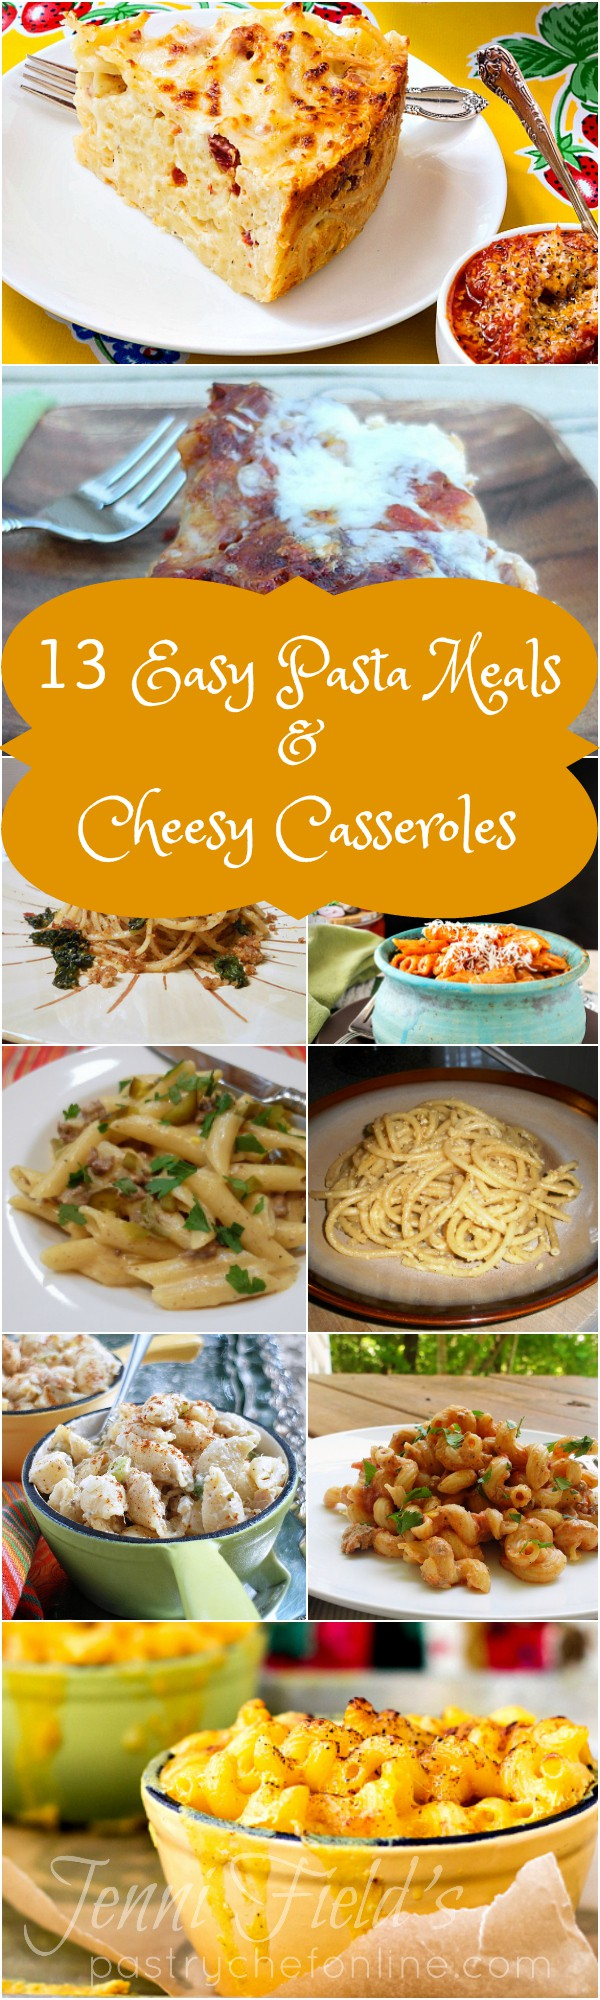 A great reference for both busy weeknights and lazy weekends, this round up of 13 Easy Pasta Meals and Cheesy Casserole recipes will help you make sure that a delicious pasta dinner recipe is always at hand. | pastrychefonline.com